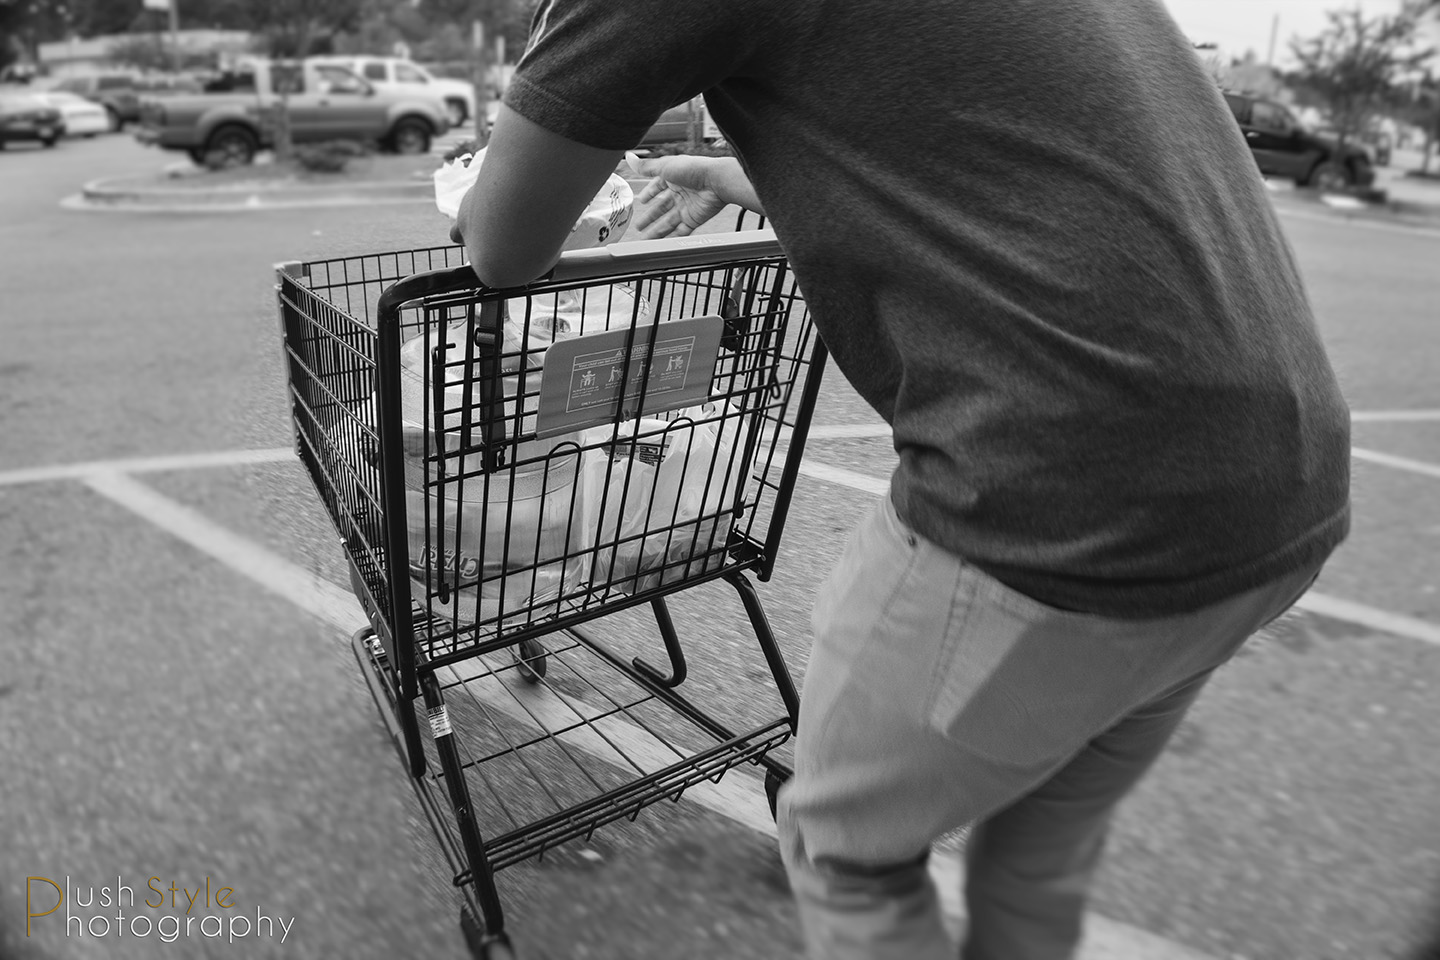 leaving grocery store image